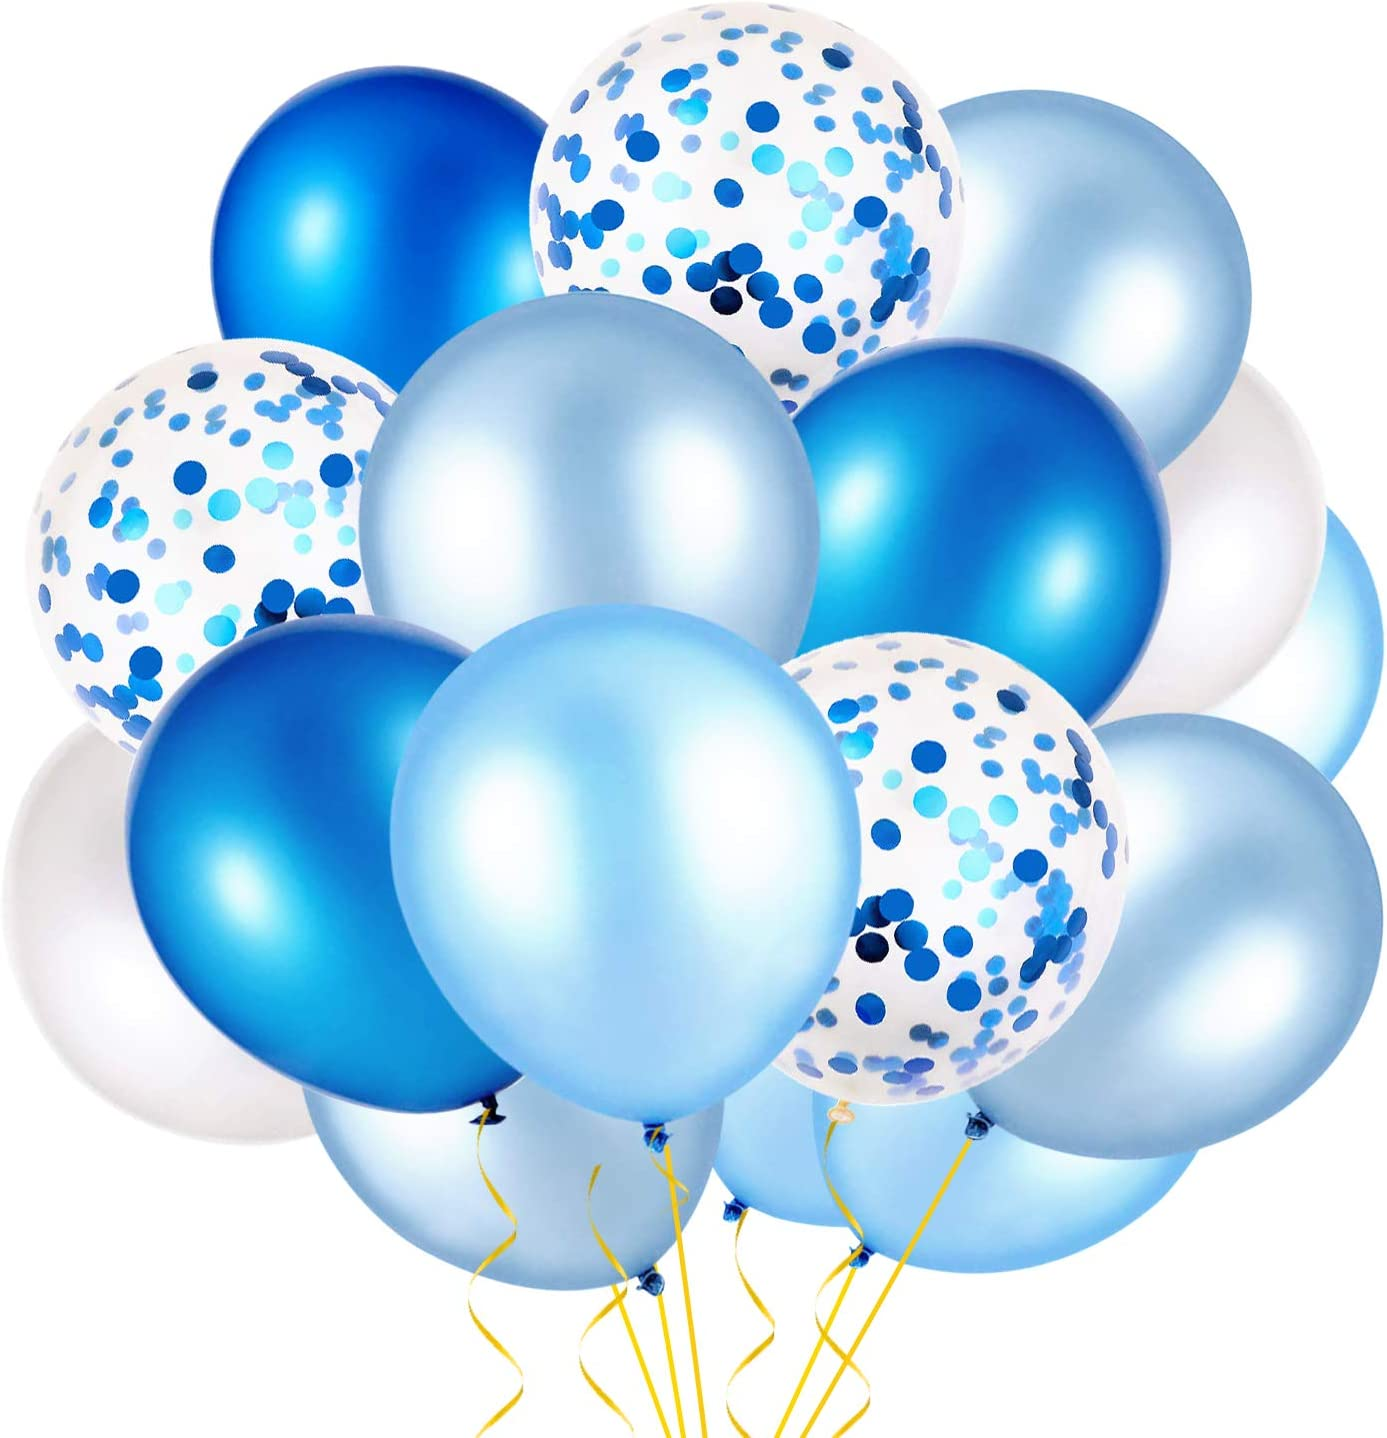 Konsait 50pcs 12 Inches Confetti Balloons Royal Blue Light Blue Baby Blue and White Latex Balloons Helium Balloons Party Supplies for Birthday Baby Shower Ocean Sea Shark Party Decoration